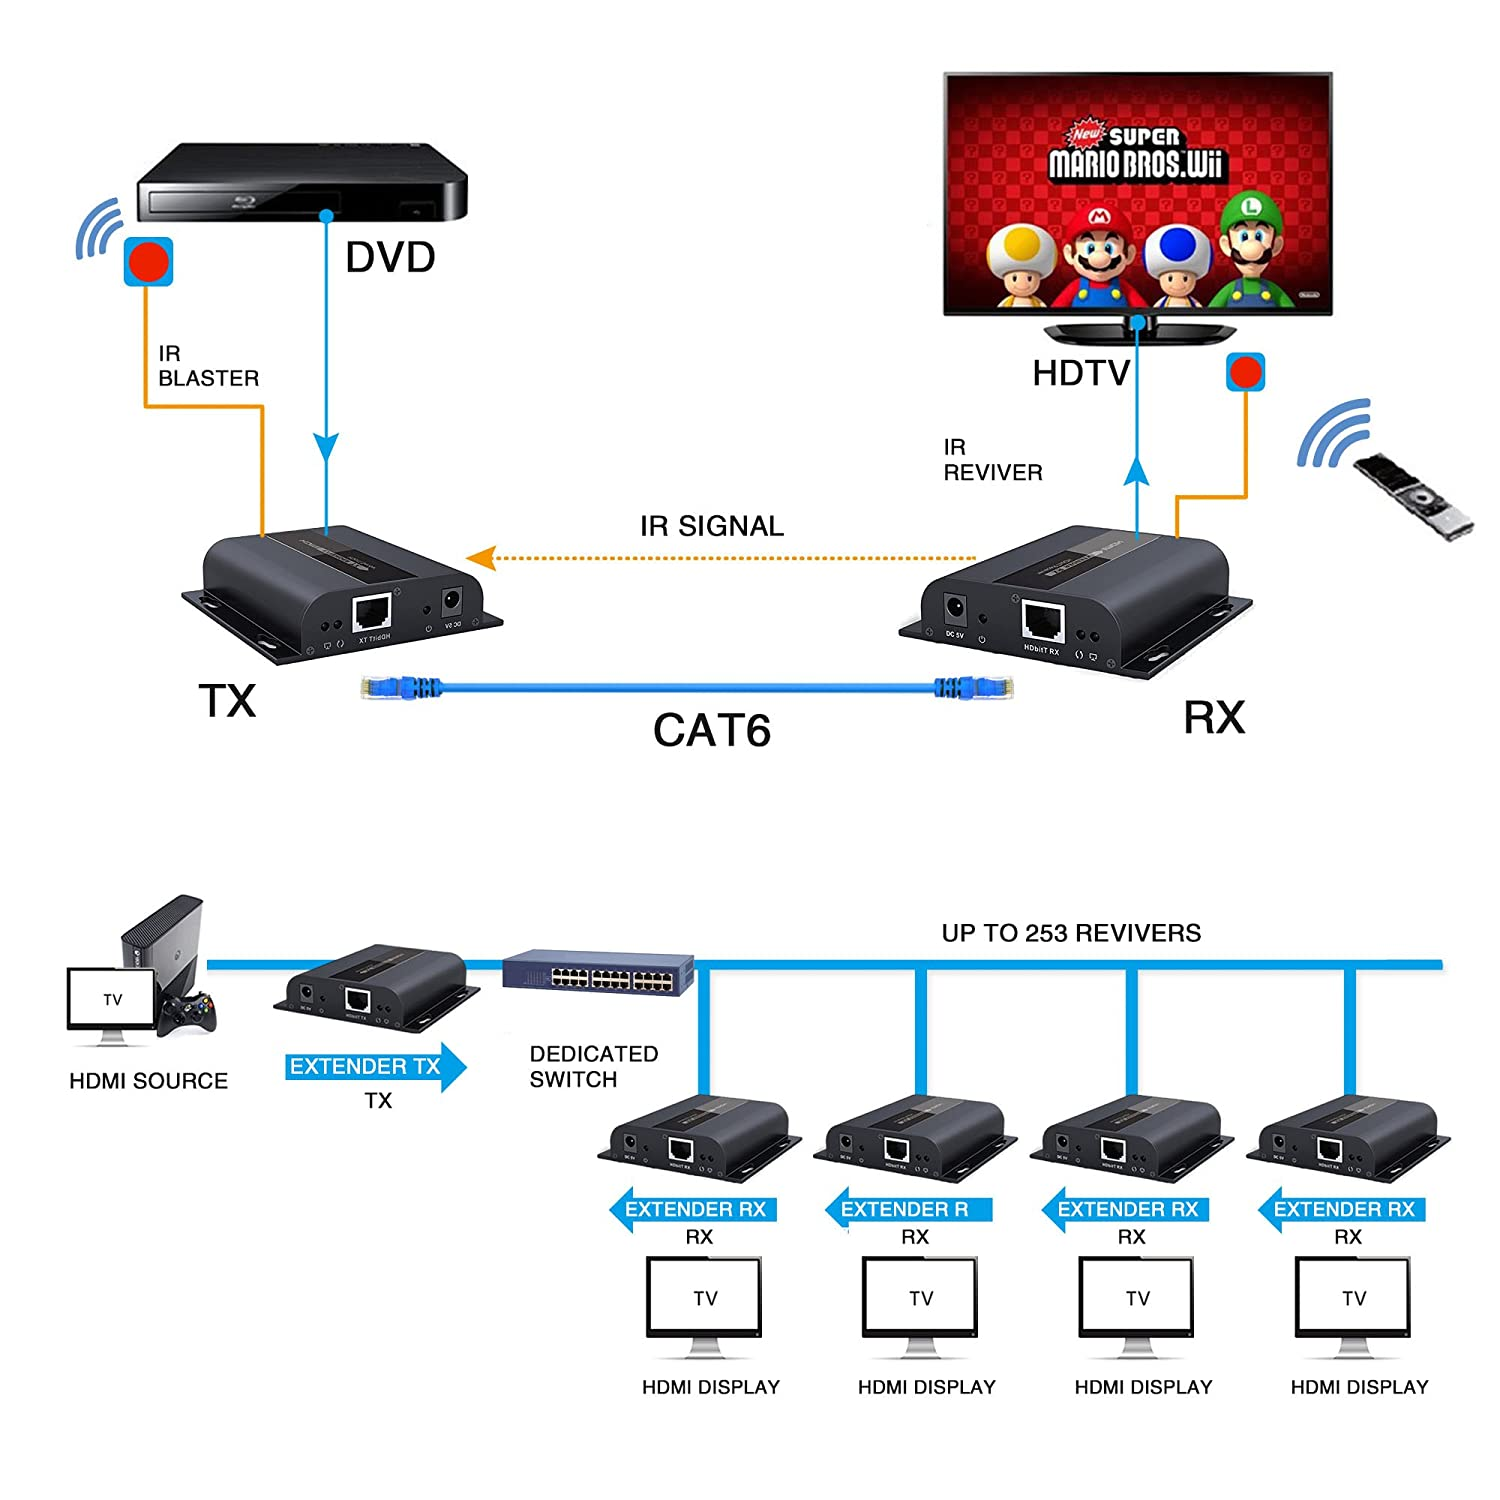 J Tech Digital Hdbitt Series One To Many Connection Details About 4x4 Hdmi Cat5e Cat6 Matrix Auto Switch Splitter Extender Ultra Hd 4k Over Tcp Ip Ethernet Single Cable